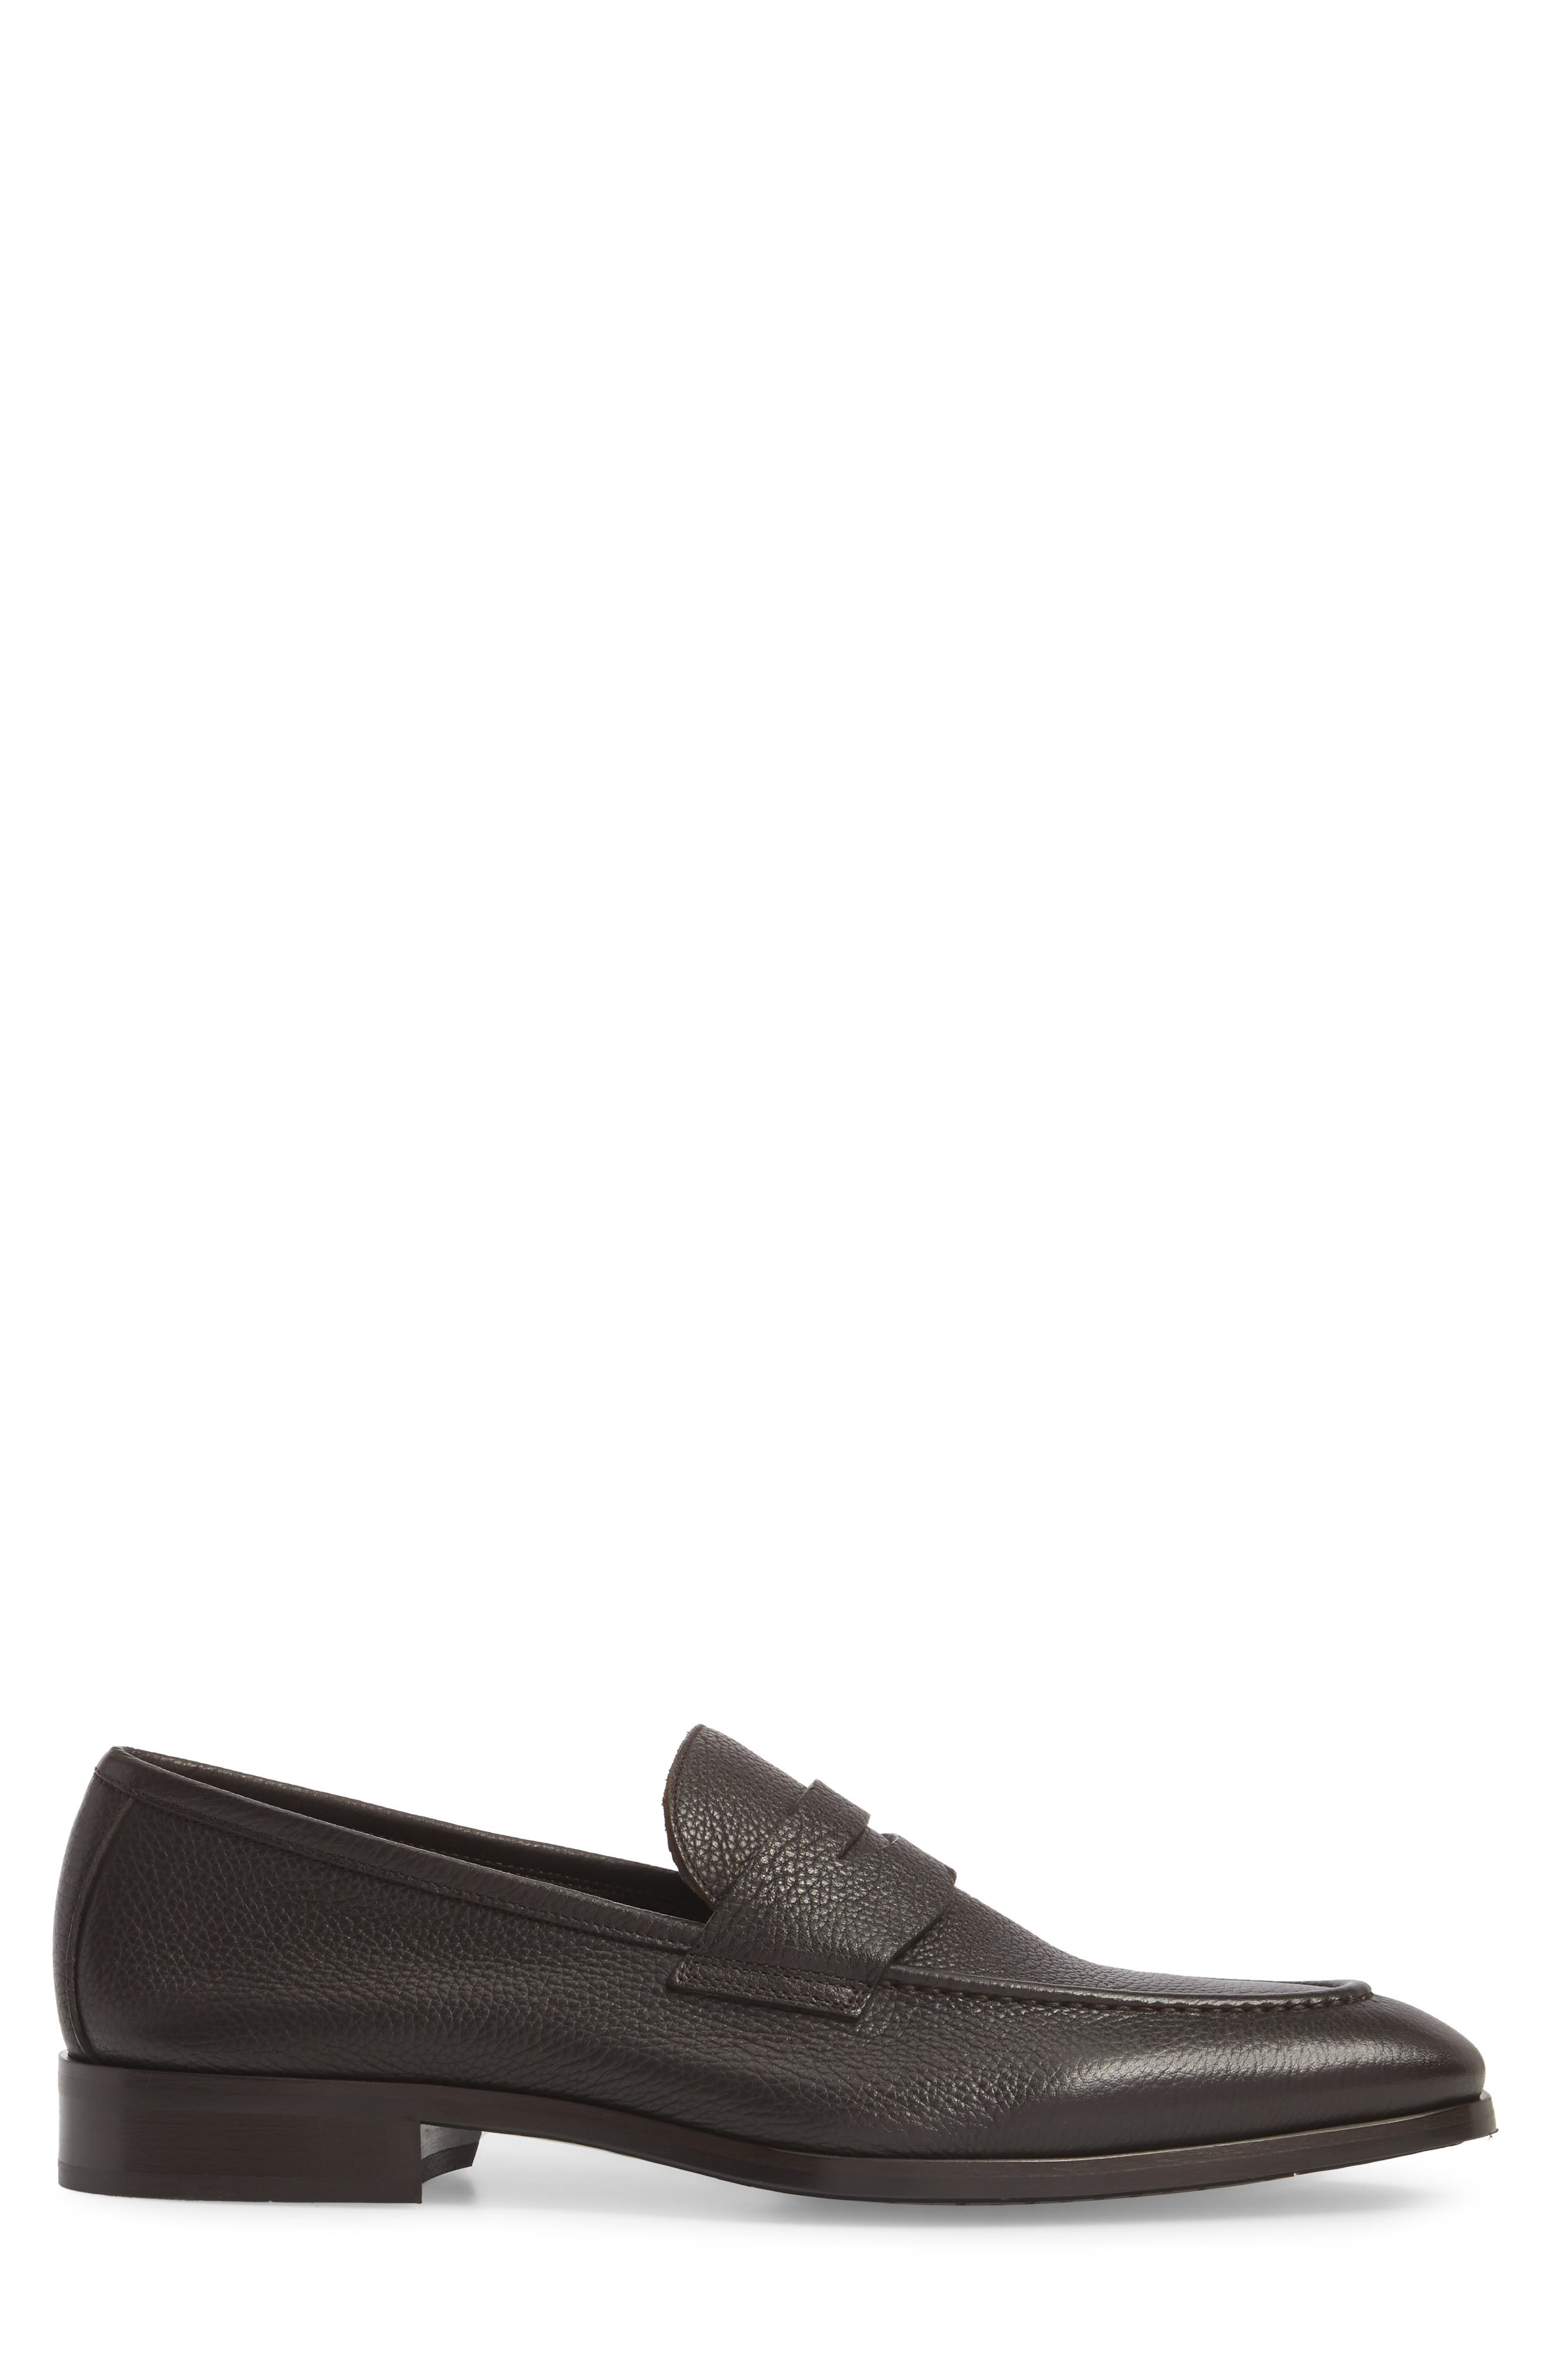 Johnson Penny Loafer,                             Alternate thumbnail 3, color,                             Tmoro Leather